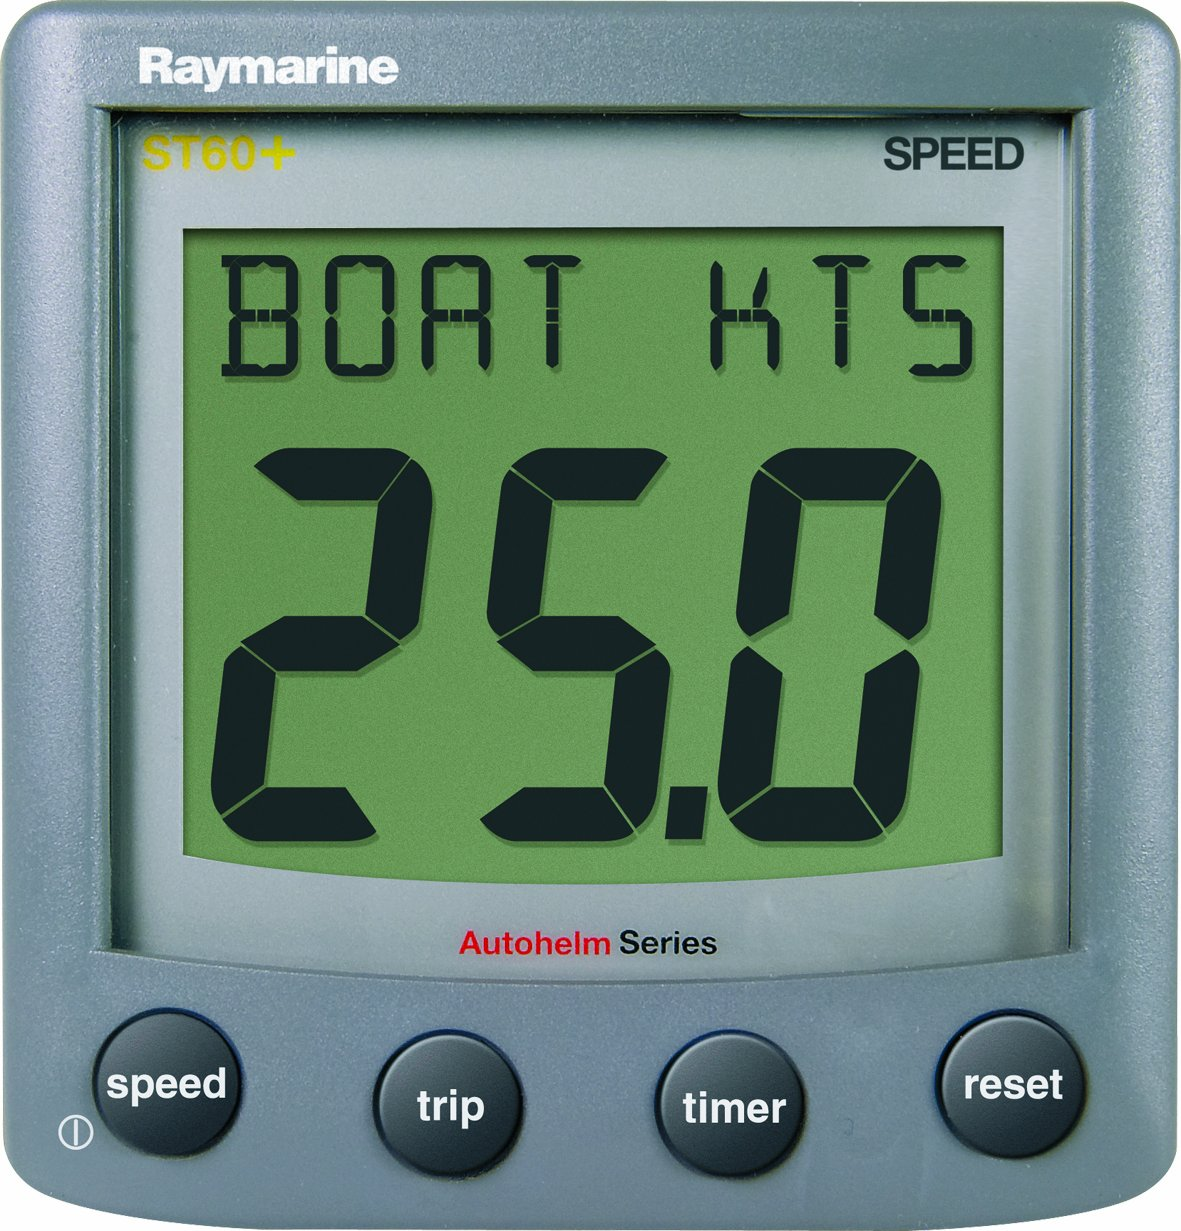 Raymarine Speed-Display ST60+, Grau